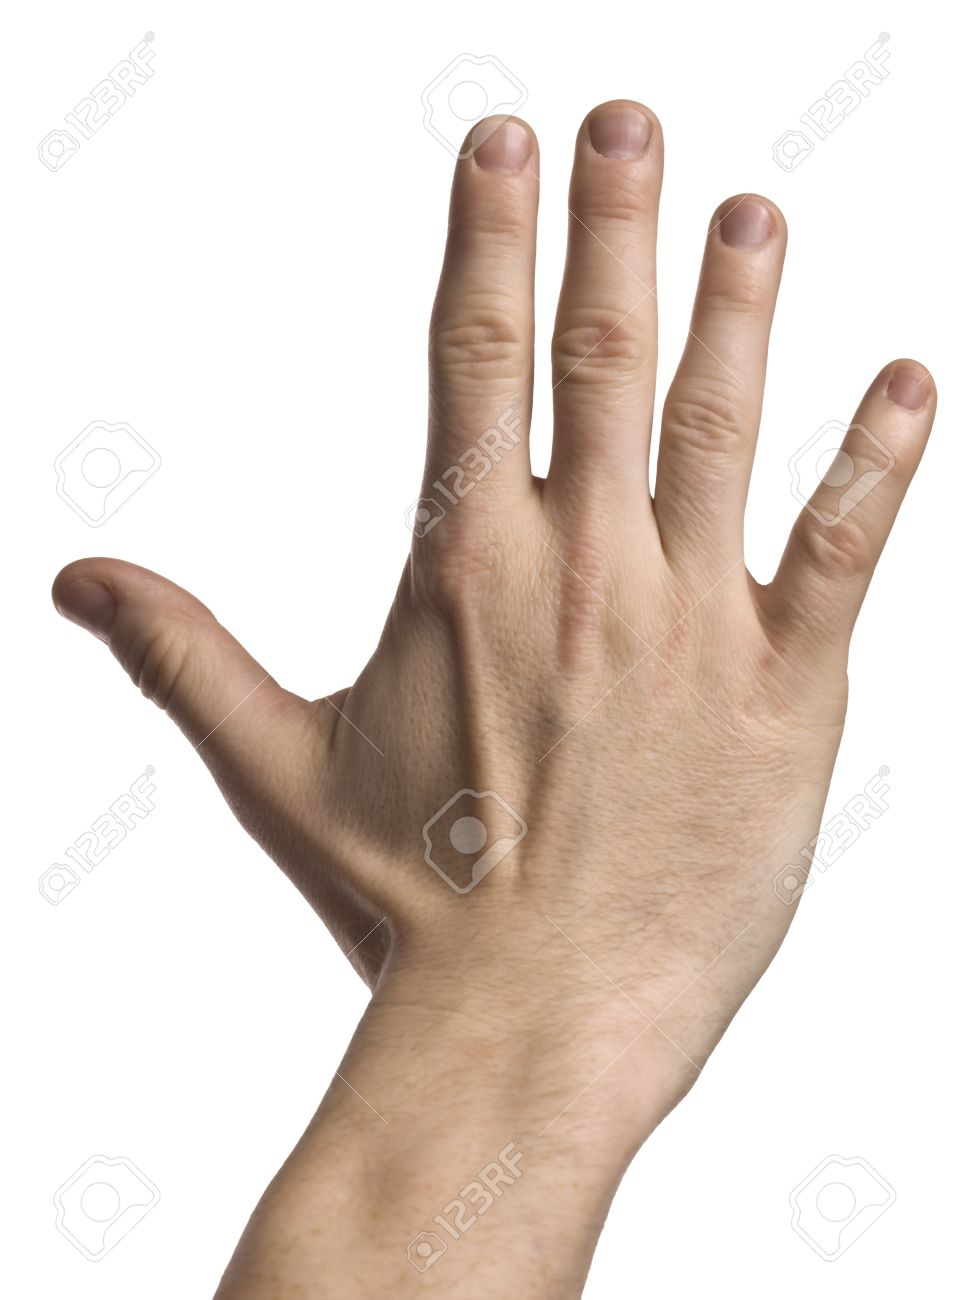 Close-up image of a hand with open palm against the white surface Stock Photo - 17251099